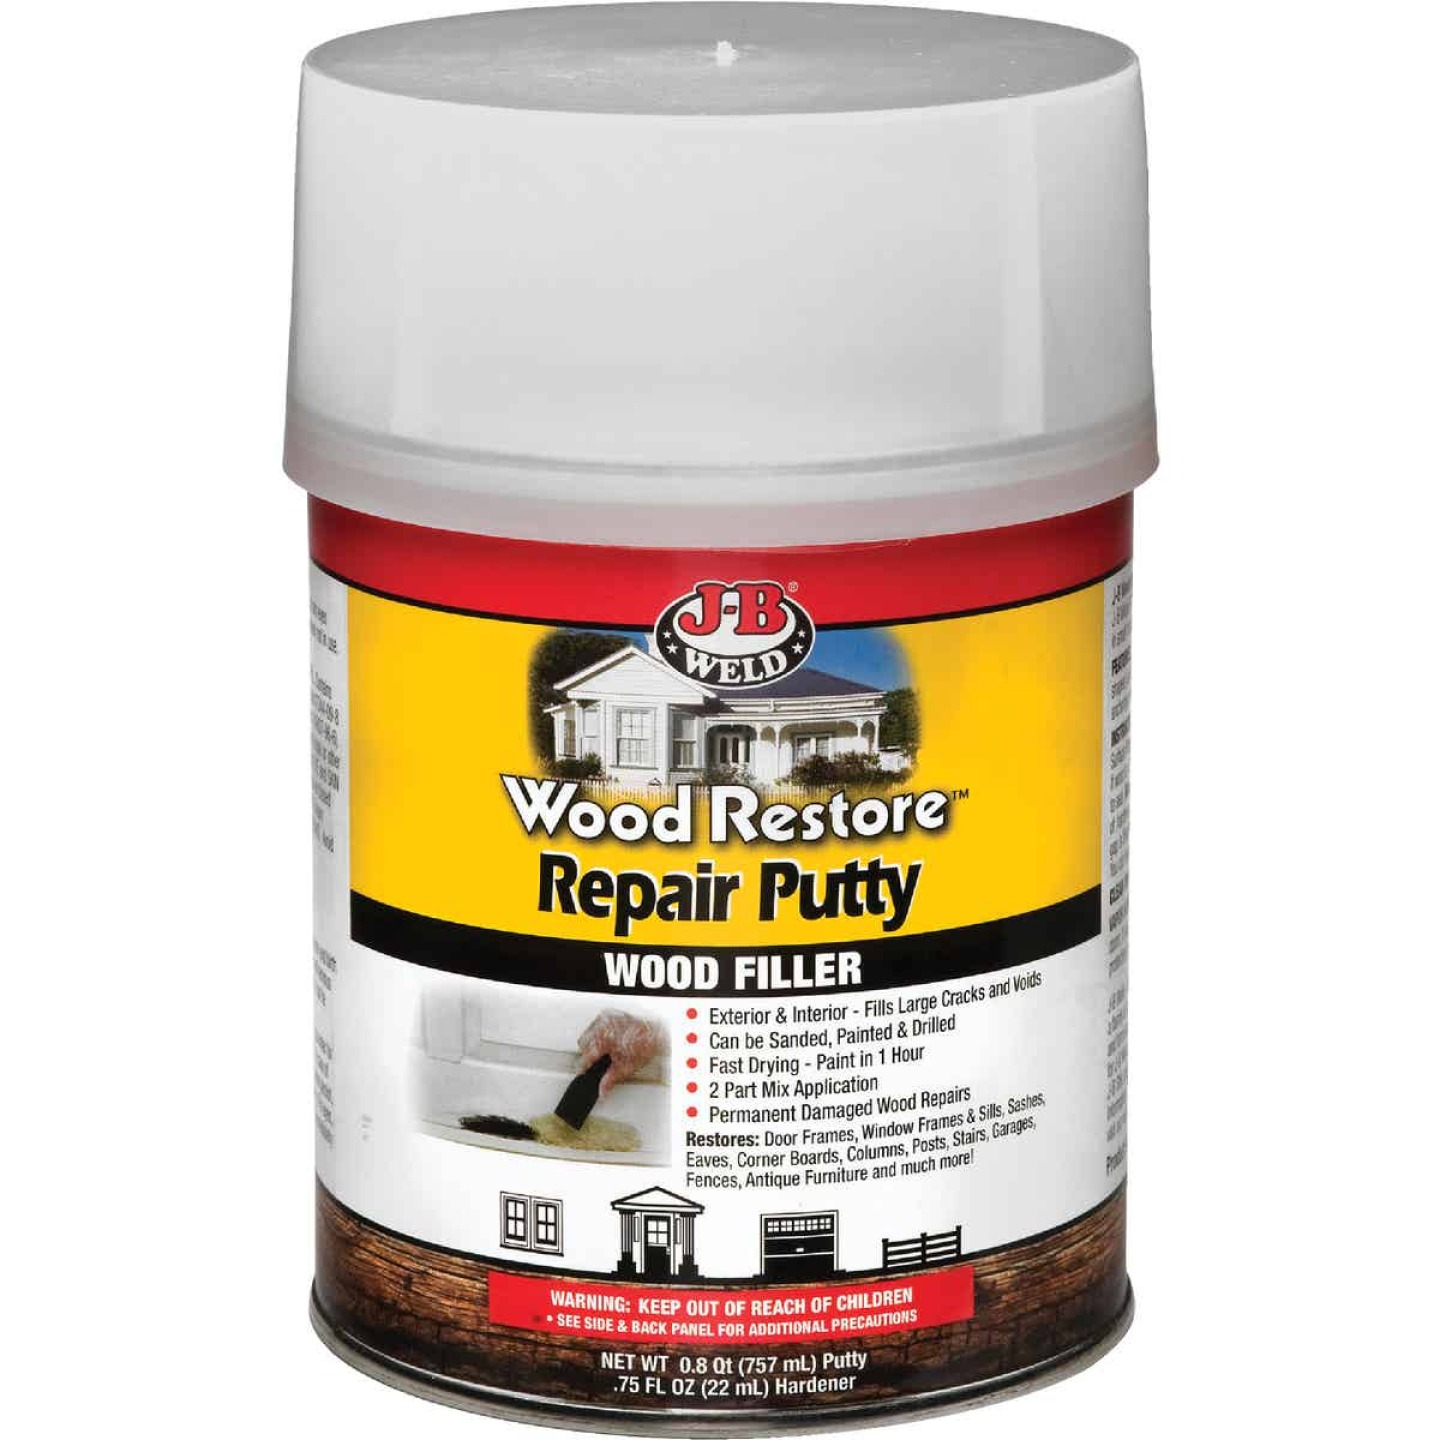 J-B Weld Wood Restore 32 Oz. 2-Part Repair Wood Putty Image 1